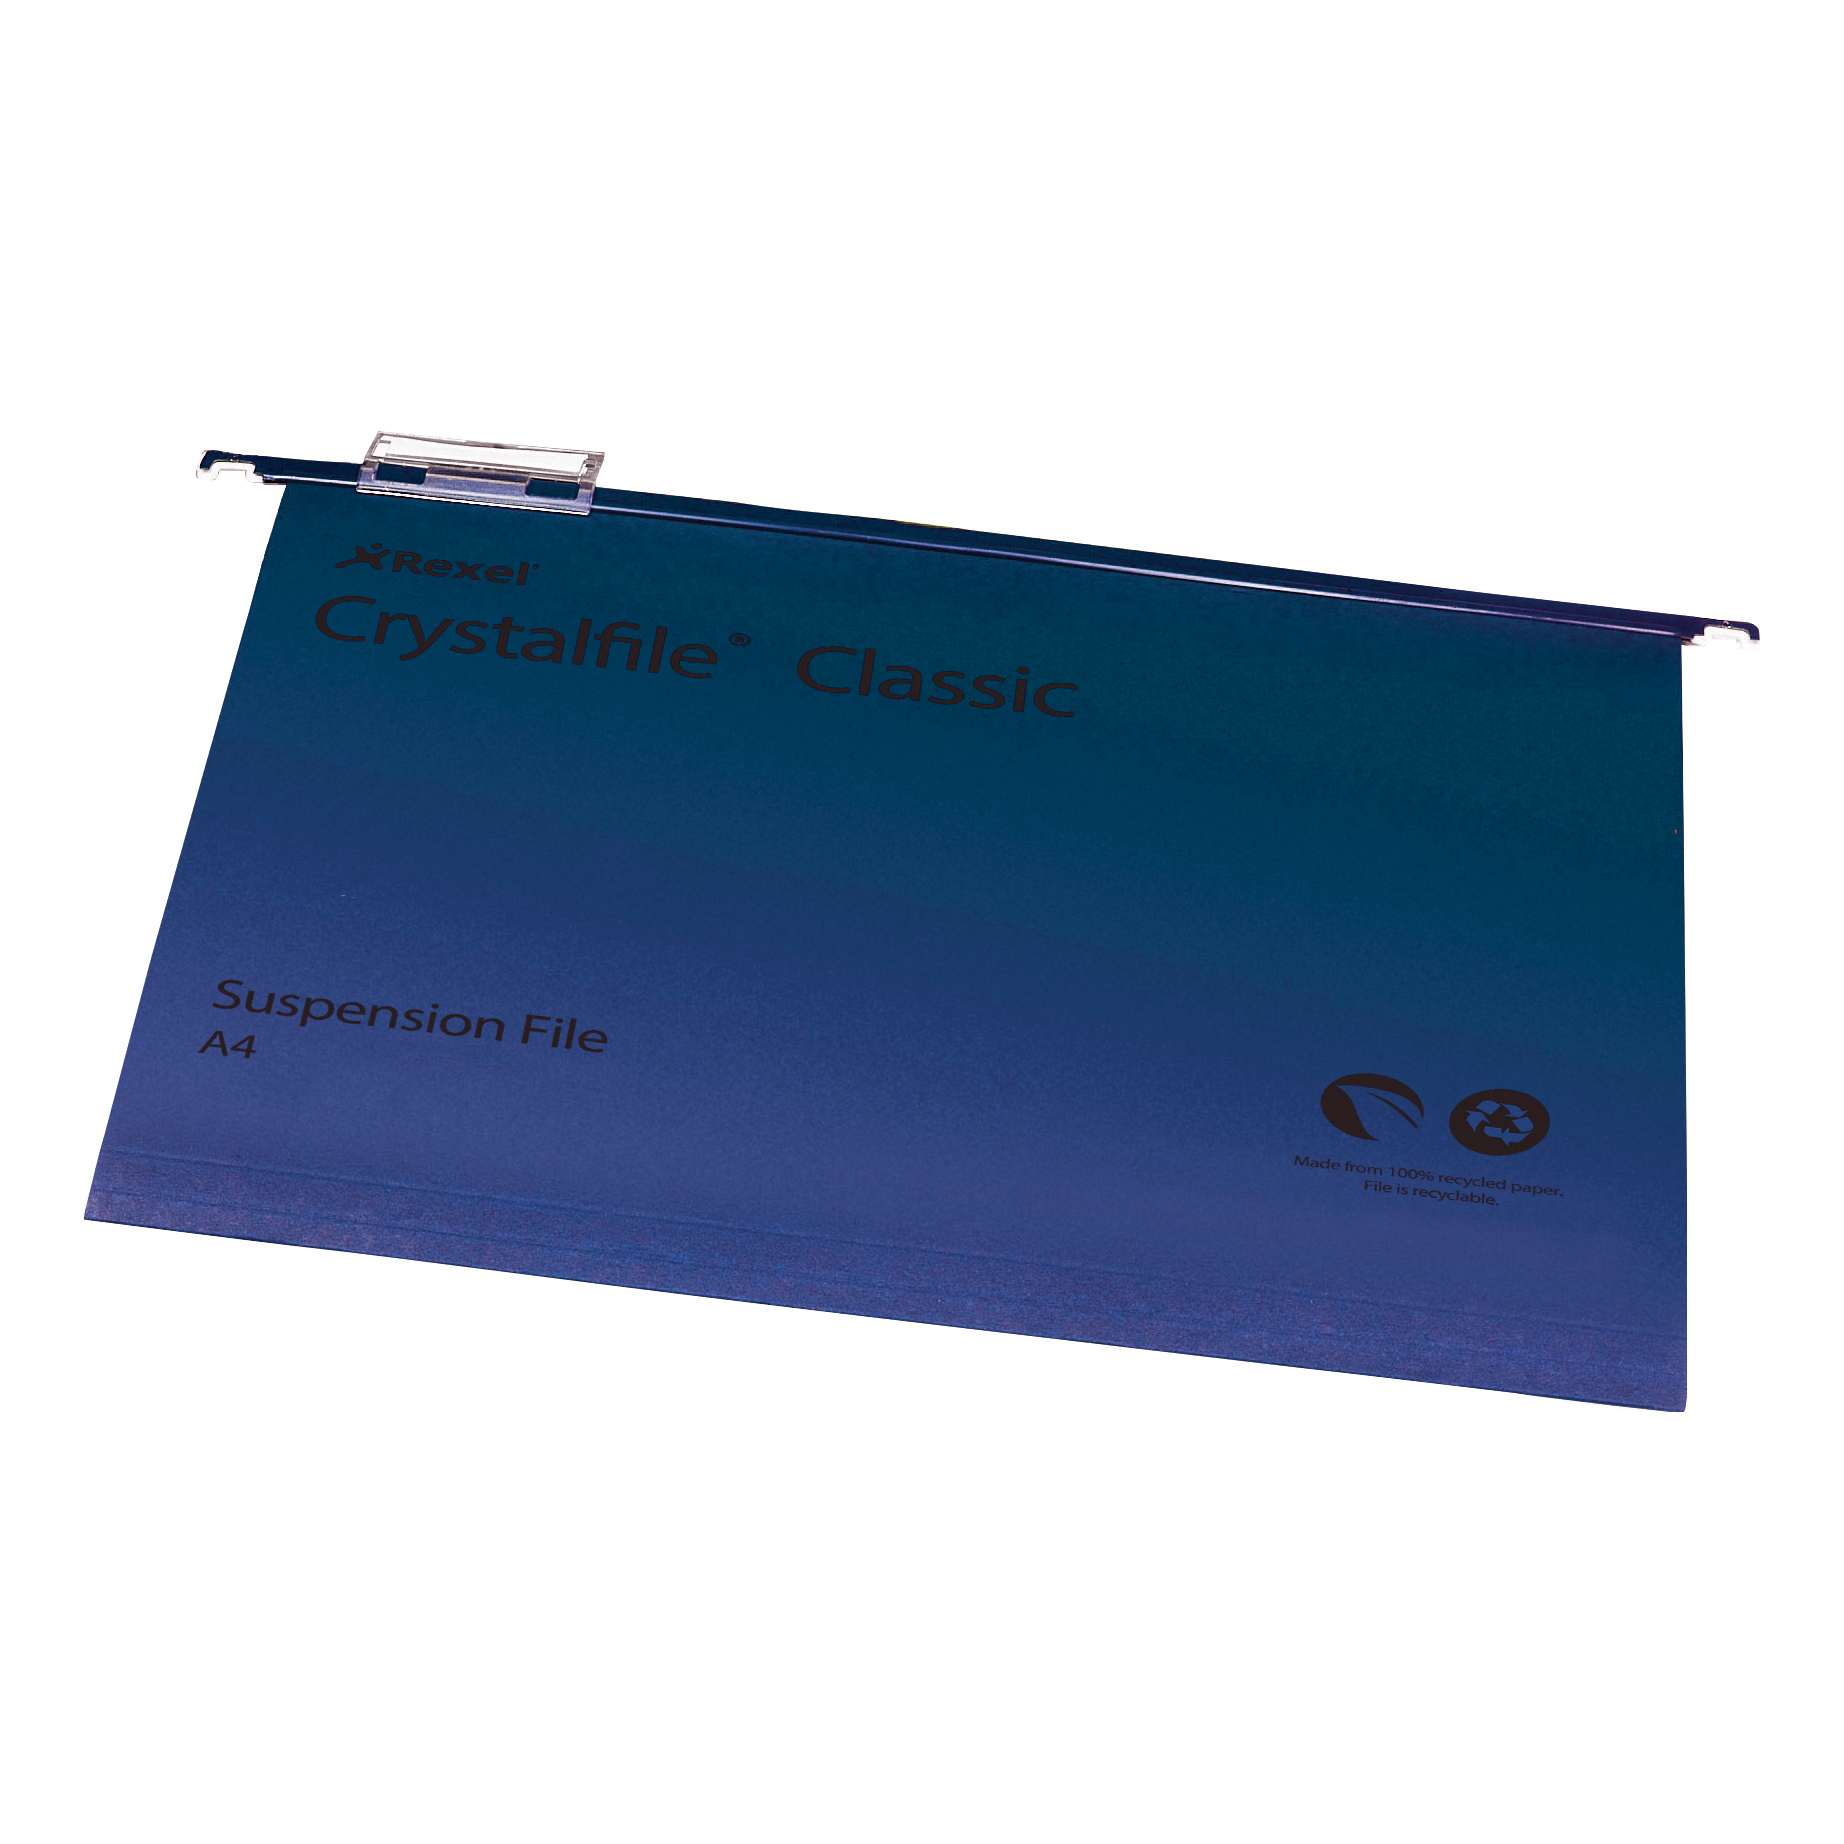 Rexel Crystalfile Classic Suspension File Manilla 15mm V-base 230gsm A4 Blue Ref 78160 Pack 50